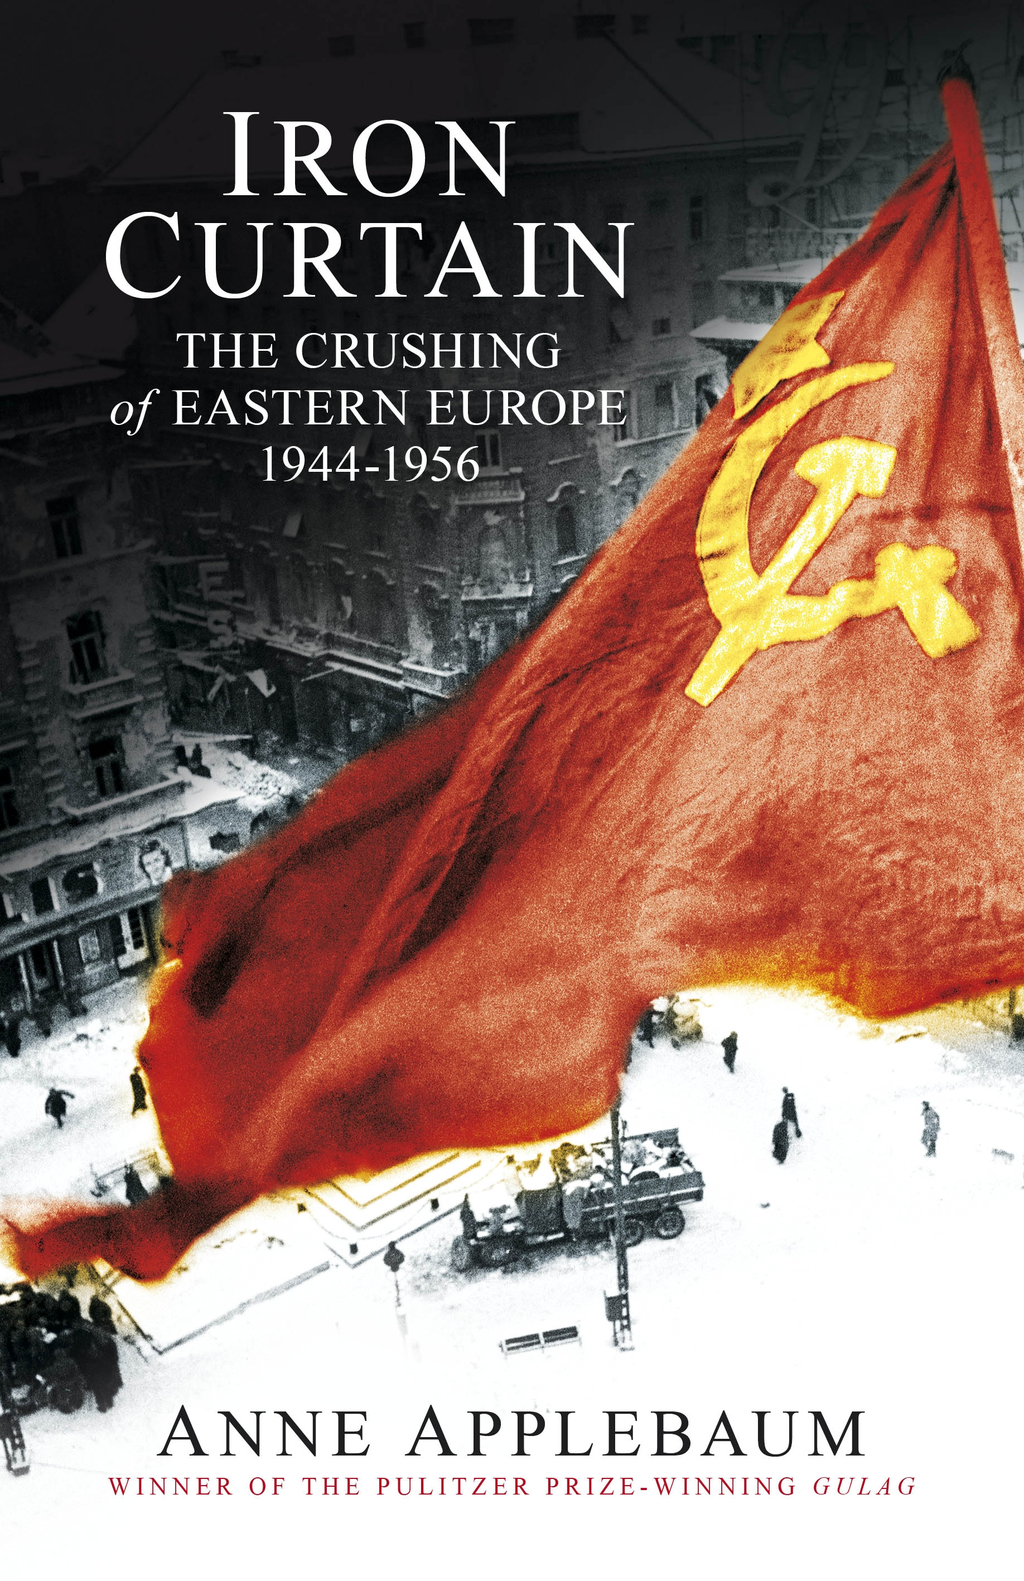 Iron Curtain The Crushing of Eastern Europe 1944-56